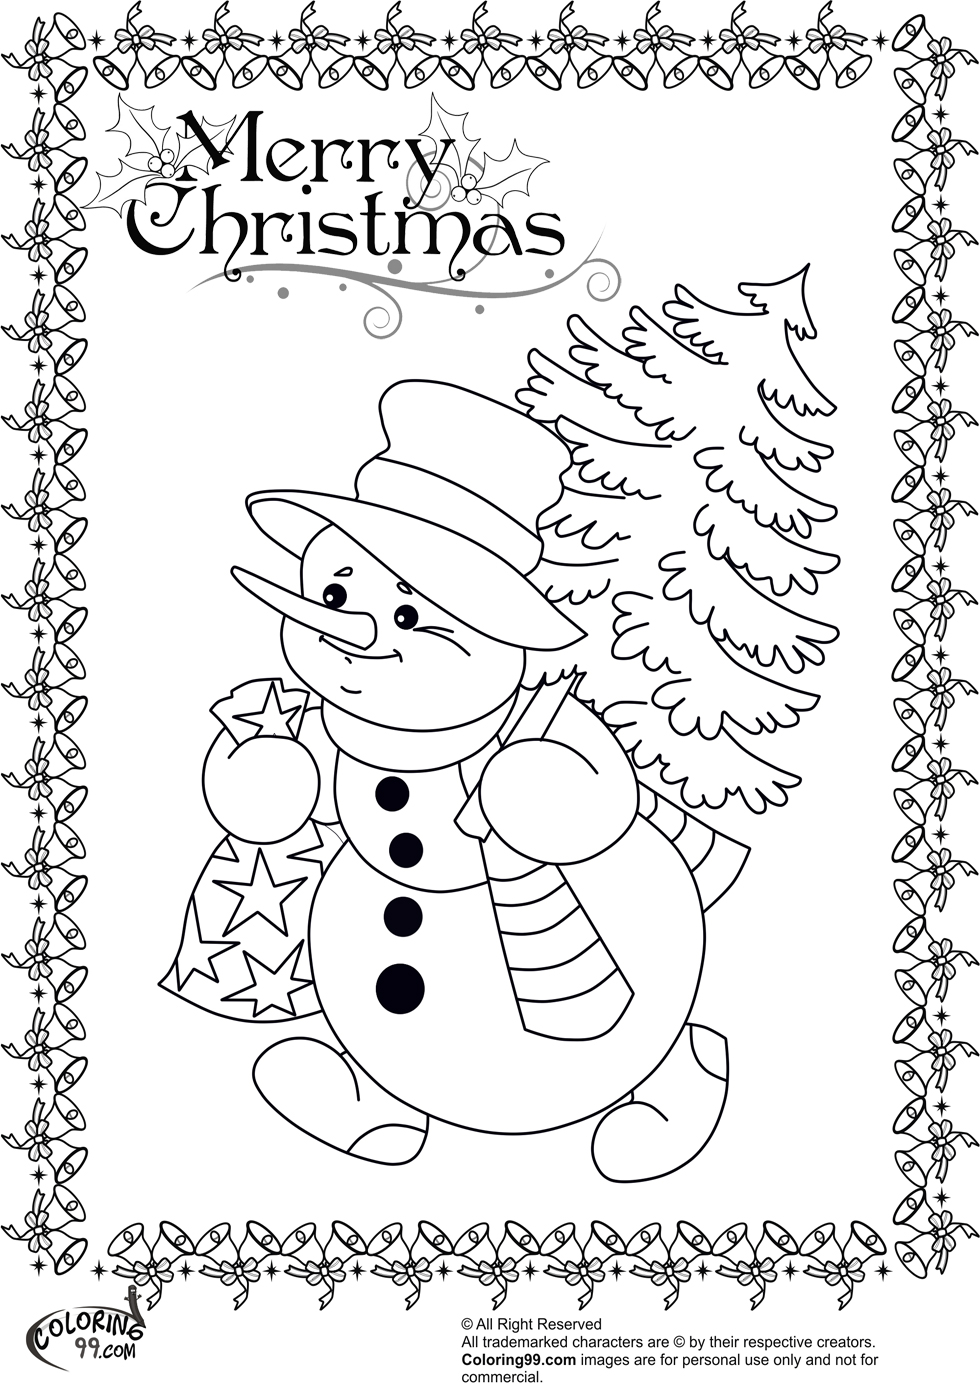 Snowman Coloring Pages Team colors